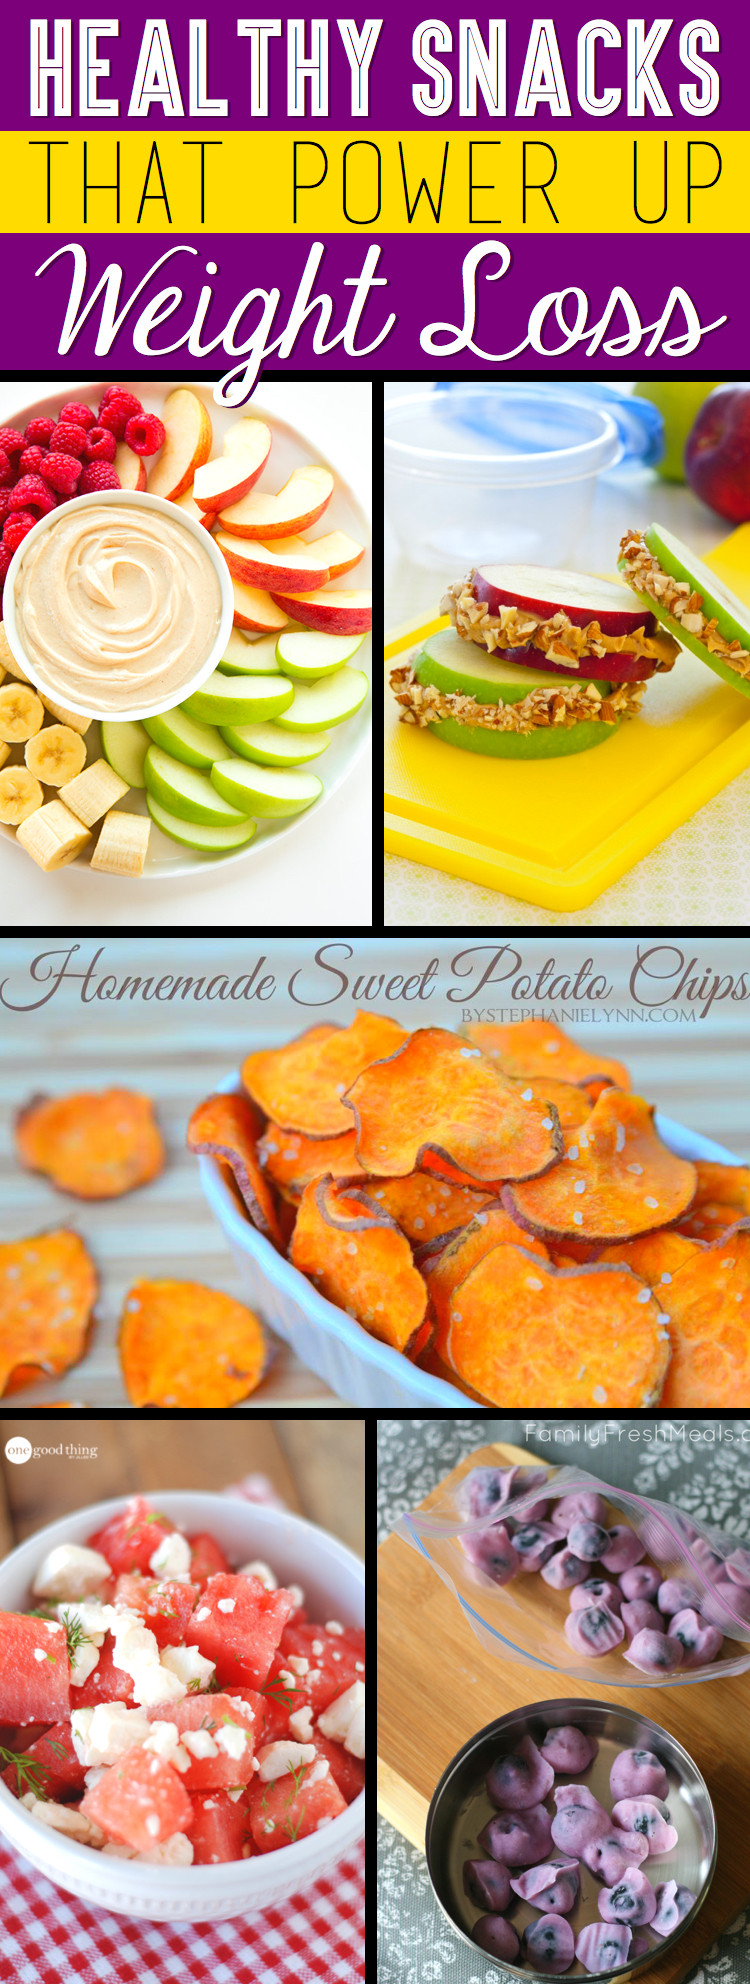 Healthy Snacks To Buy For Weight Loss  Diy Easy Snacks To Make At Home Diy Do It Your Self